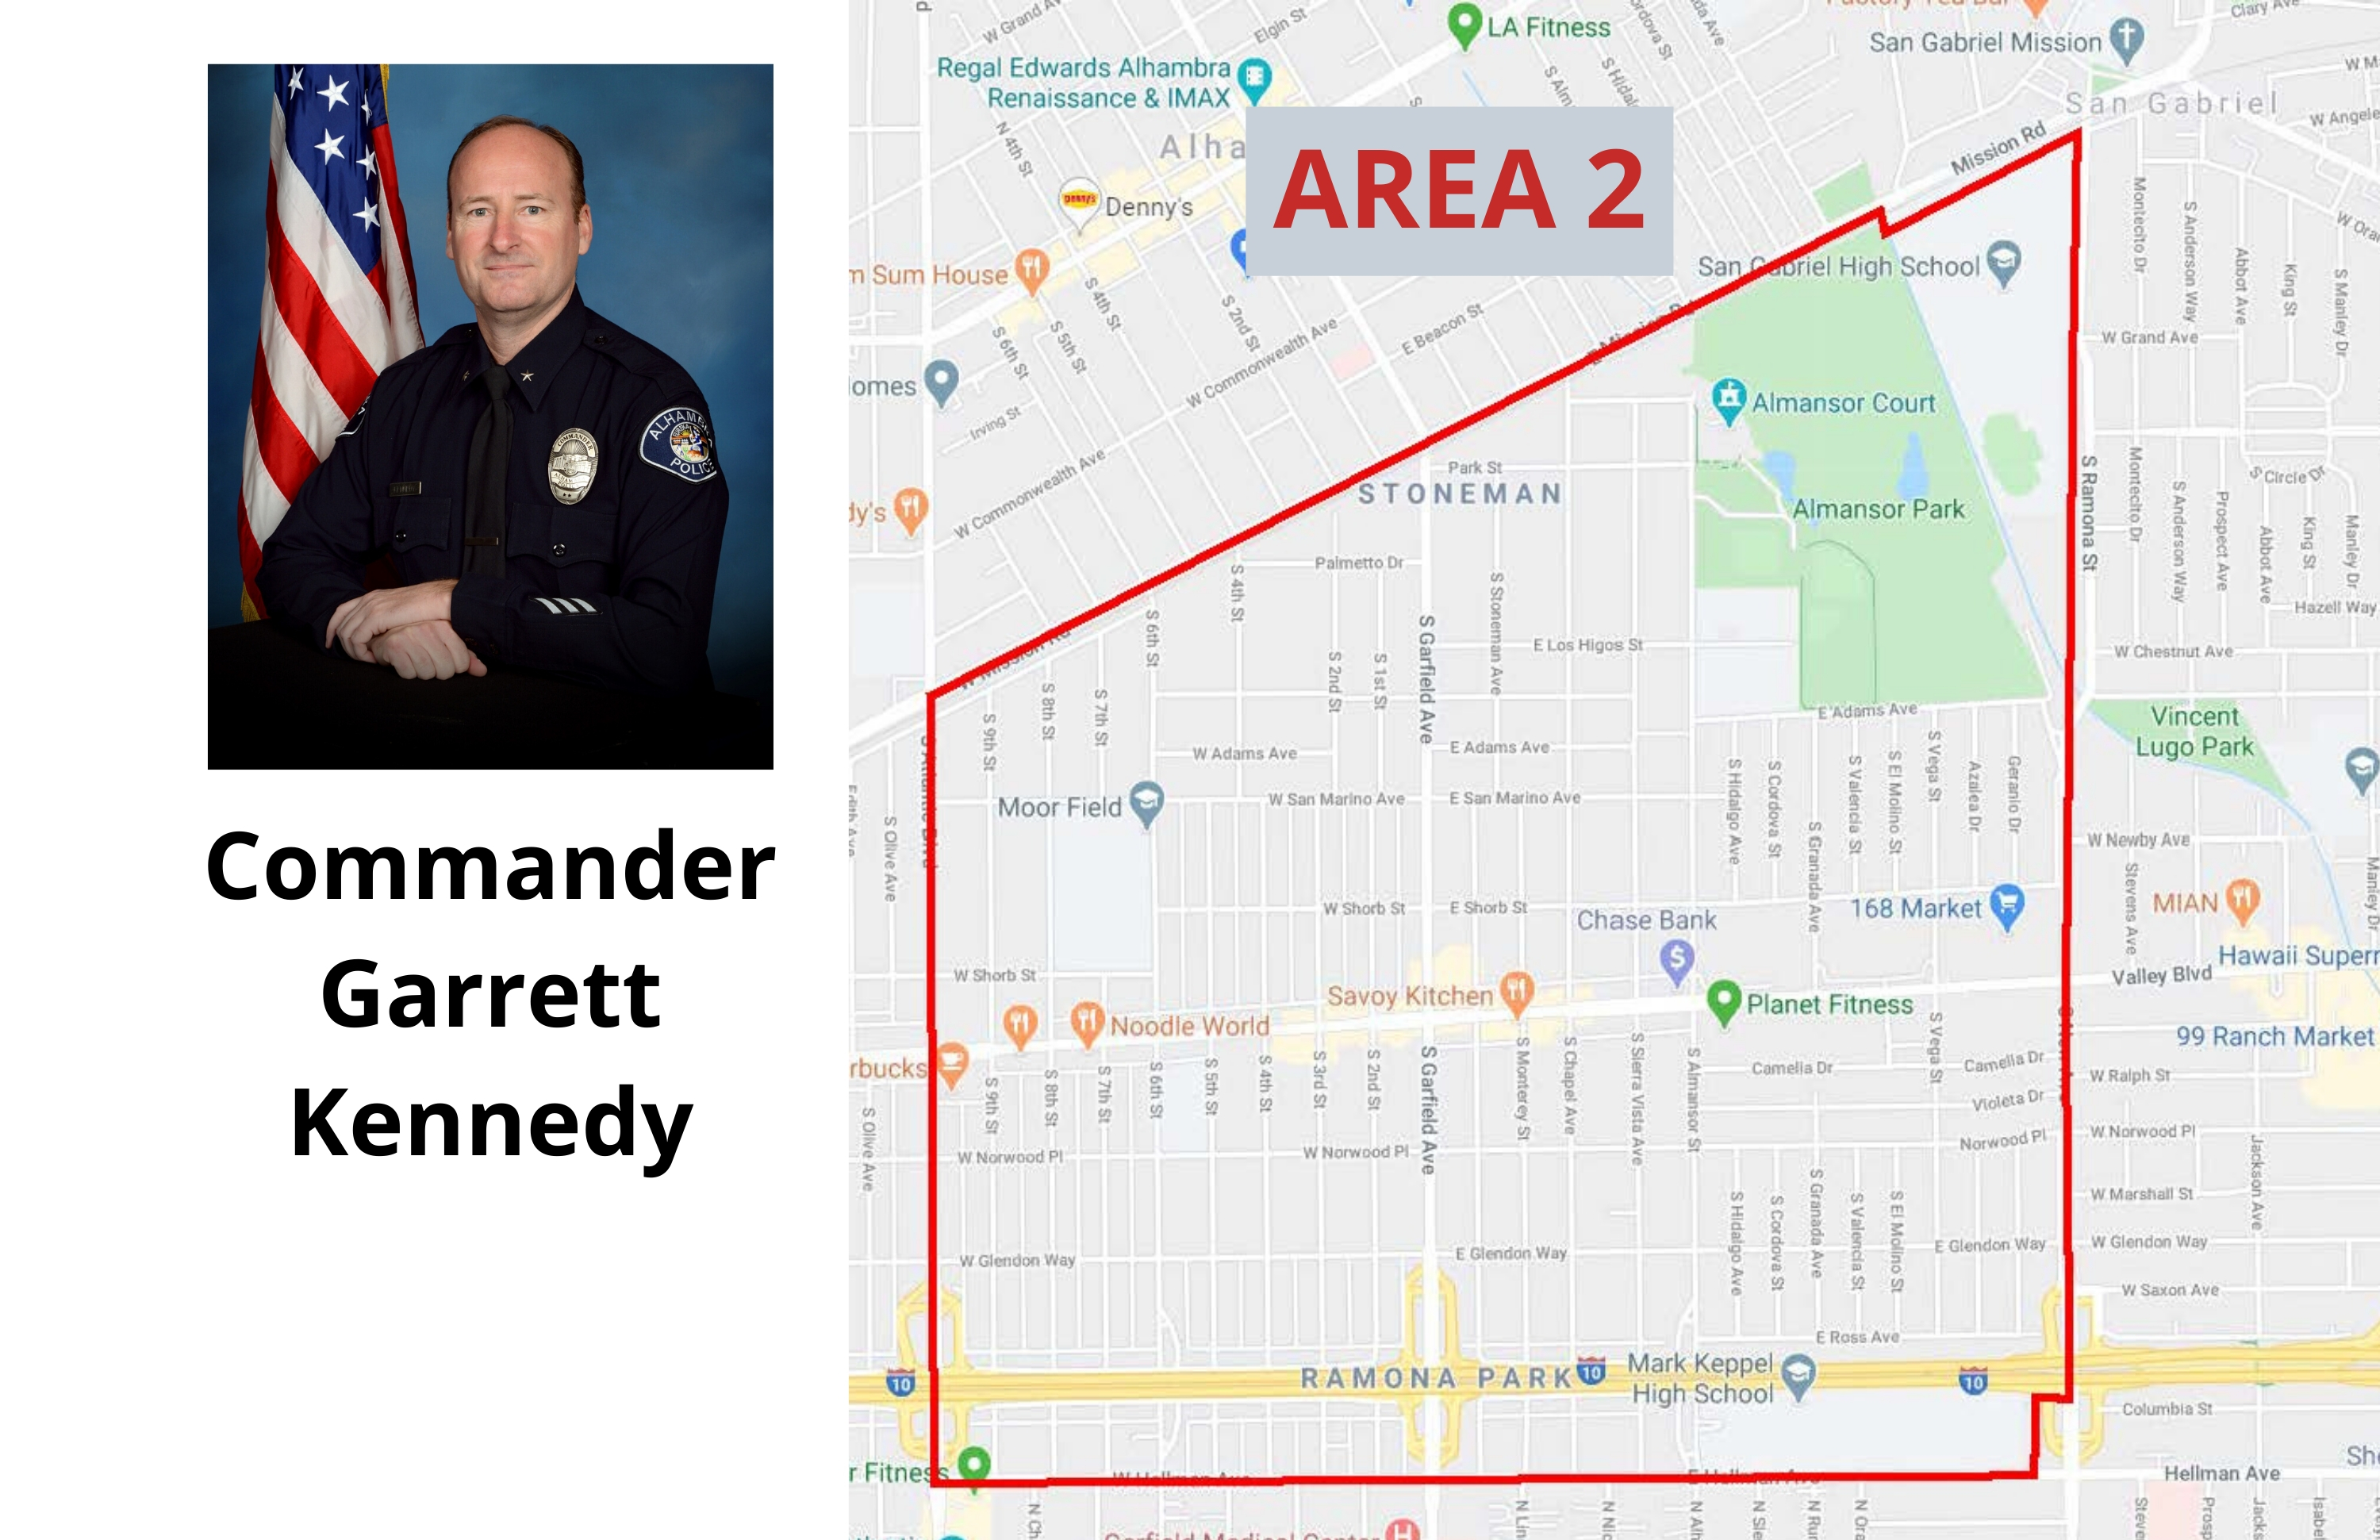 Picture of Commander Garrett Kennedy and map of Area 2